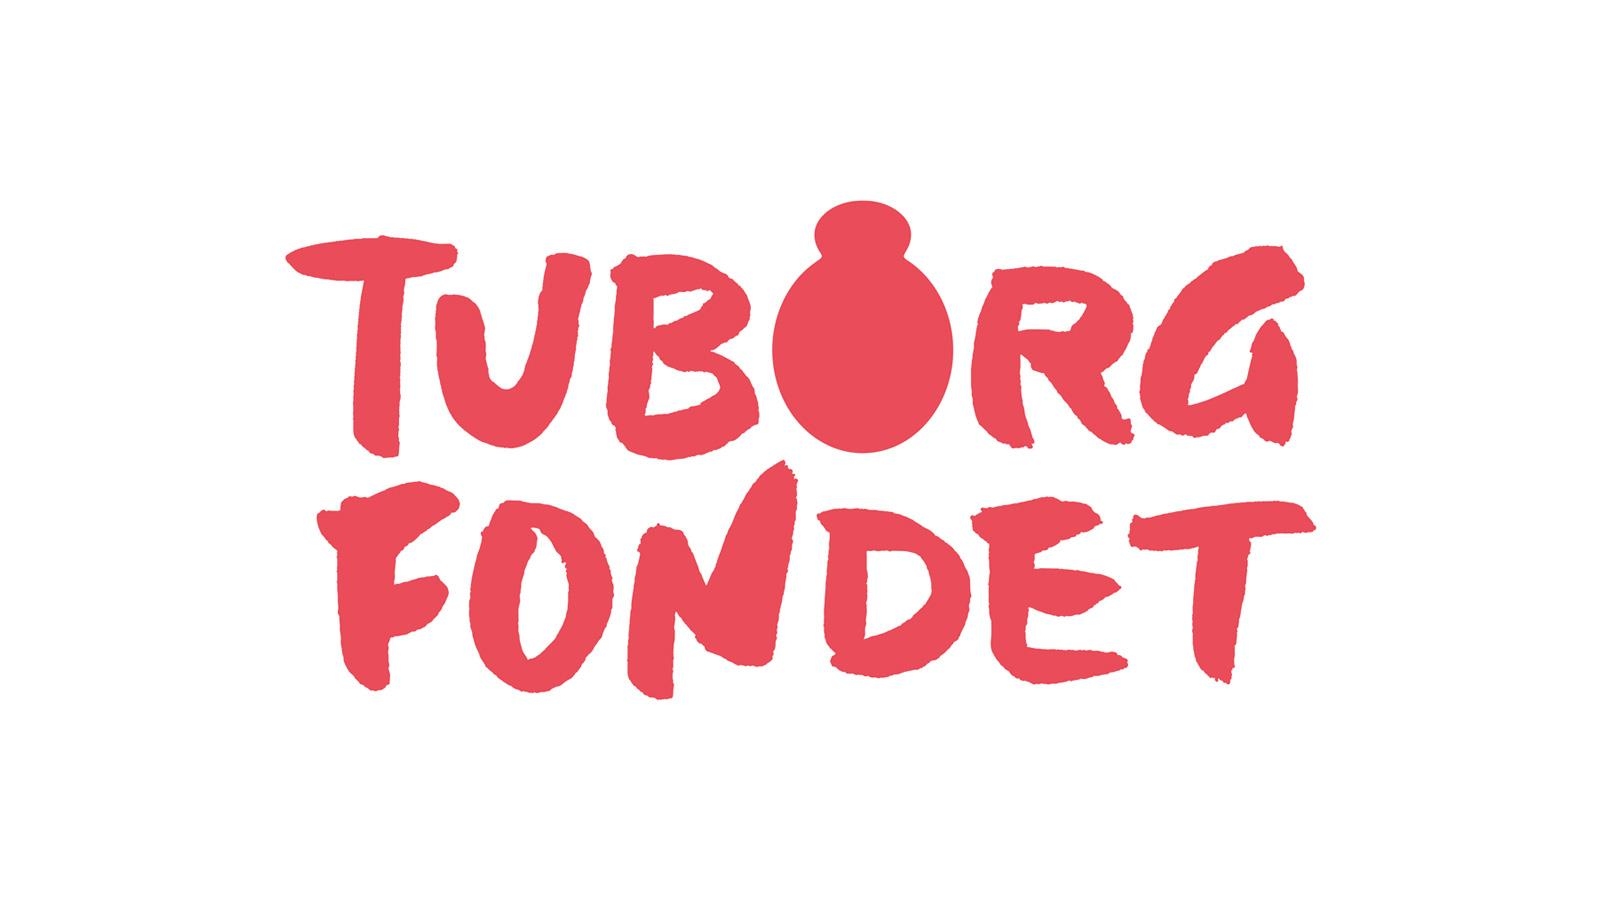 tuborgfondet_positioned.jpg